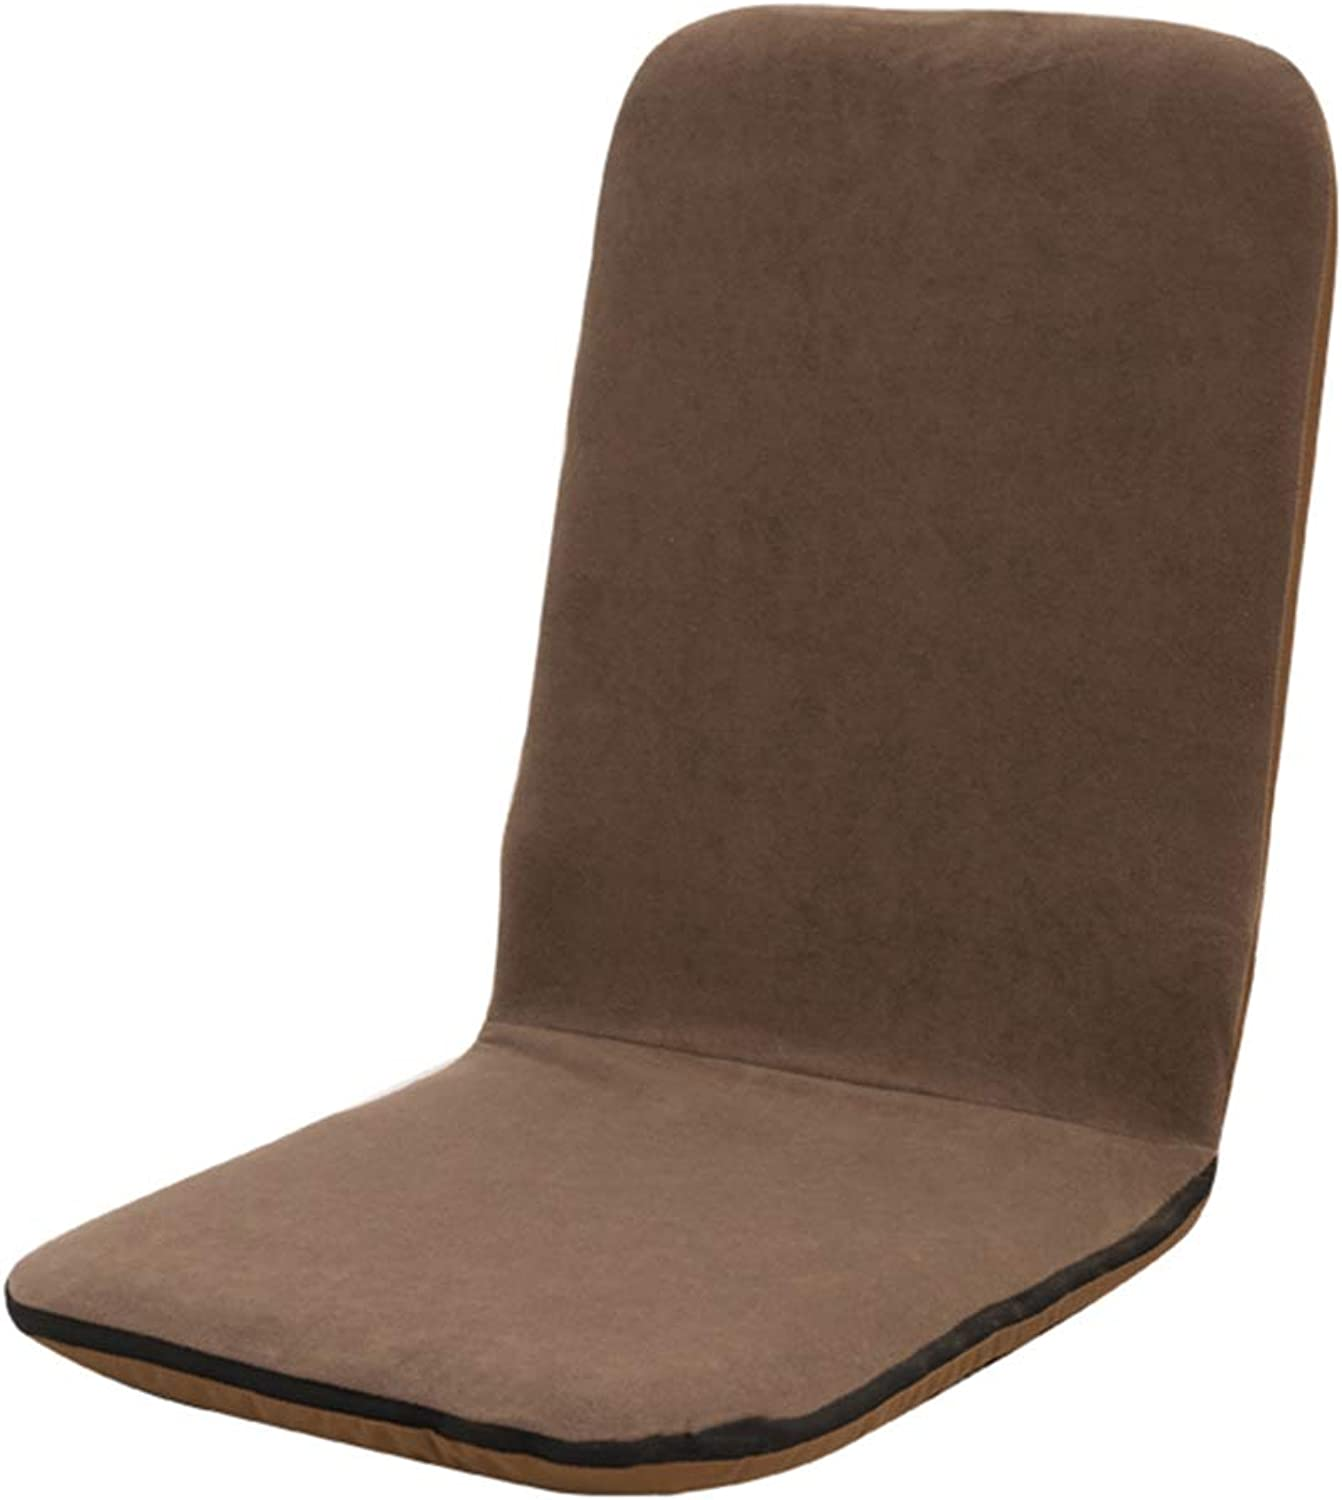 LJFYXZ Folding Lazy Sofa Chair Single Small Sofa Breathable mesh Lightweight and Portable Computer Armchair Unadjustable (color   Brown)